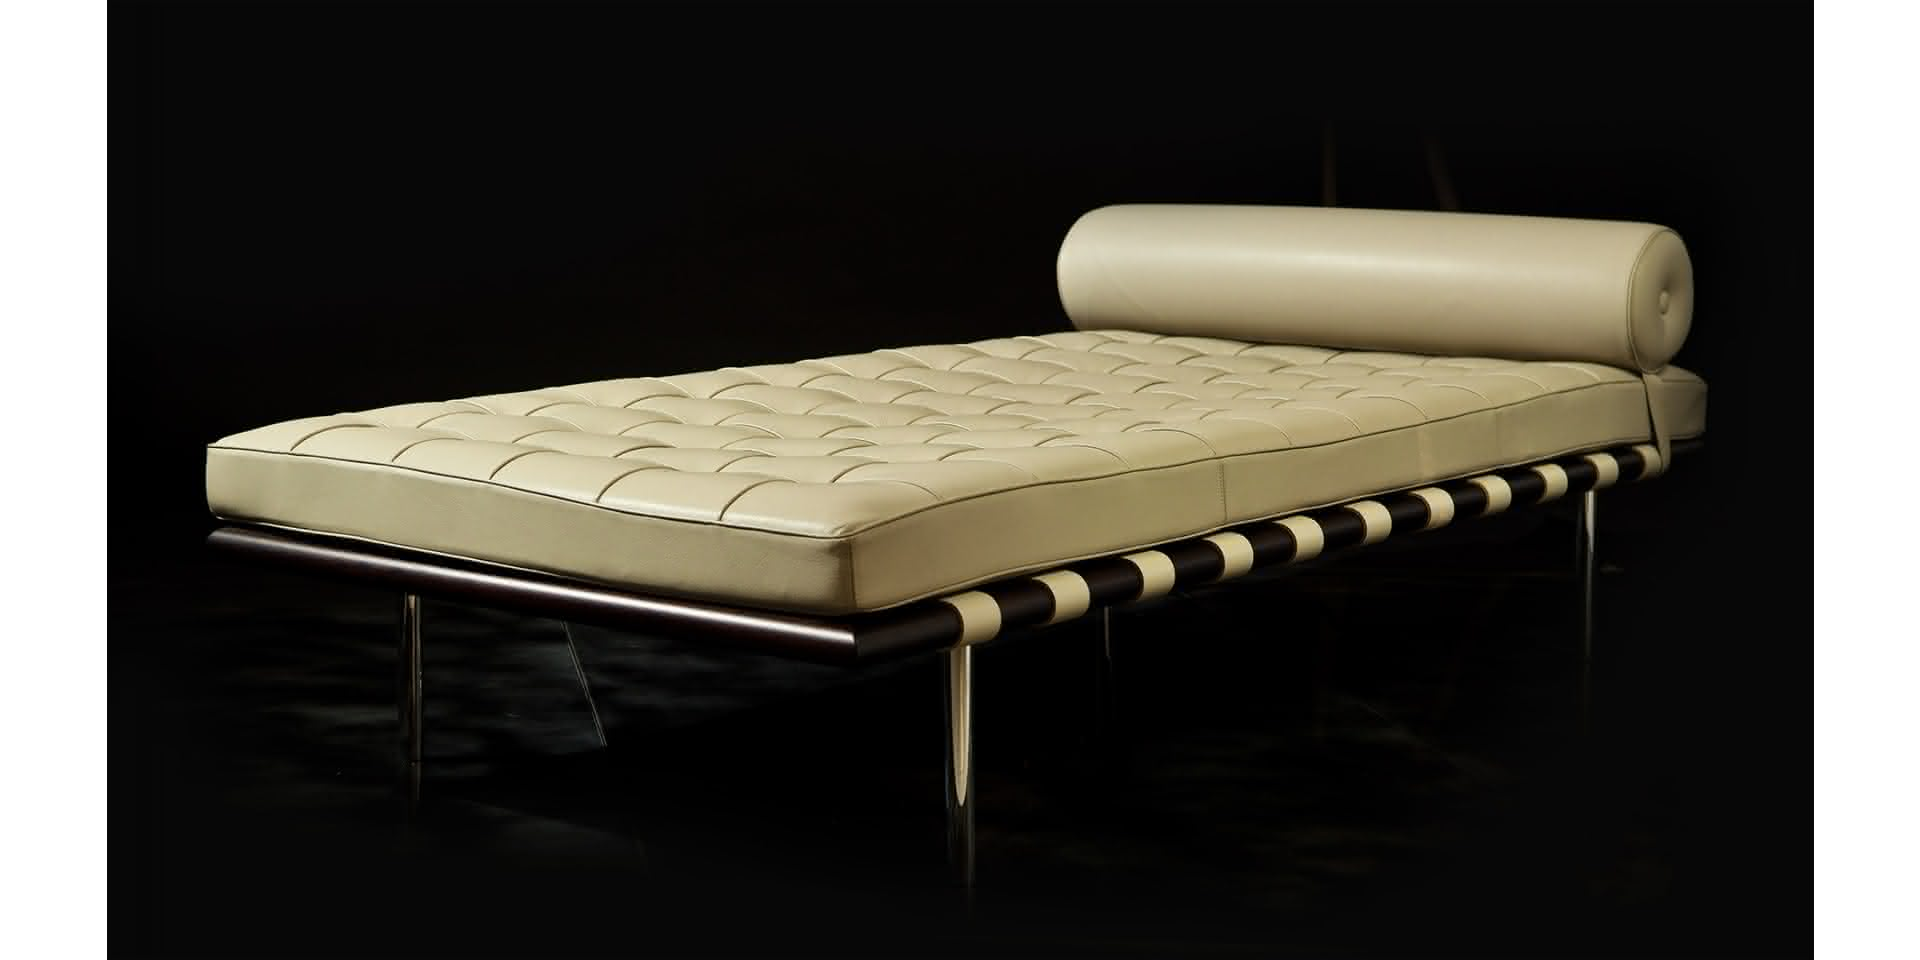 Barcelona Daybed Barcelona Daybed Large With Leather Upholstery